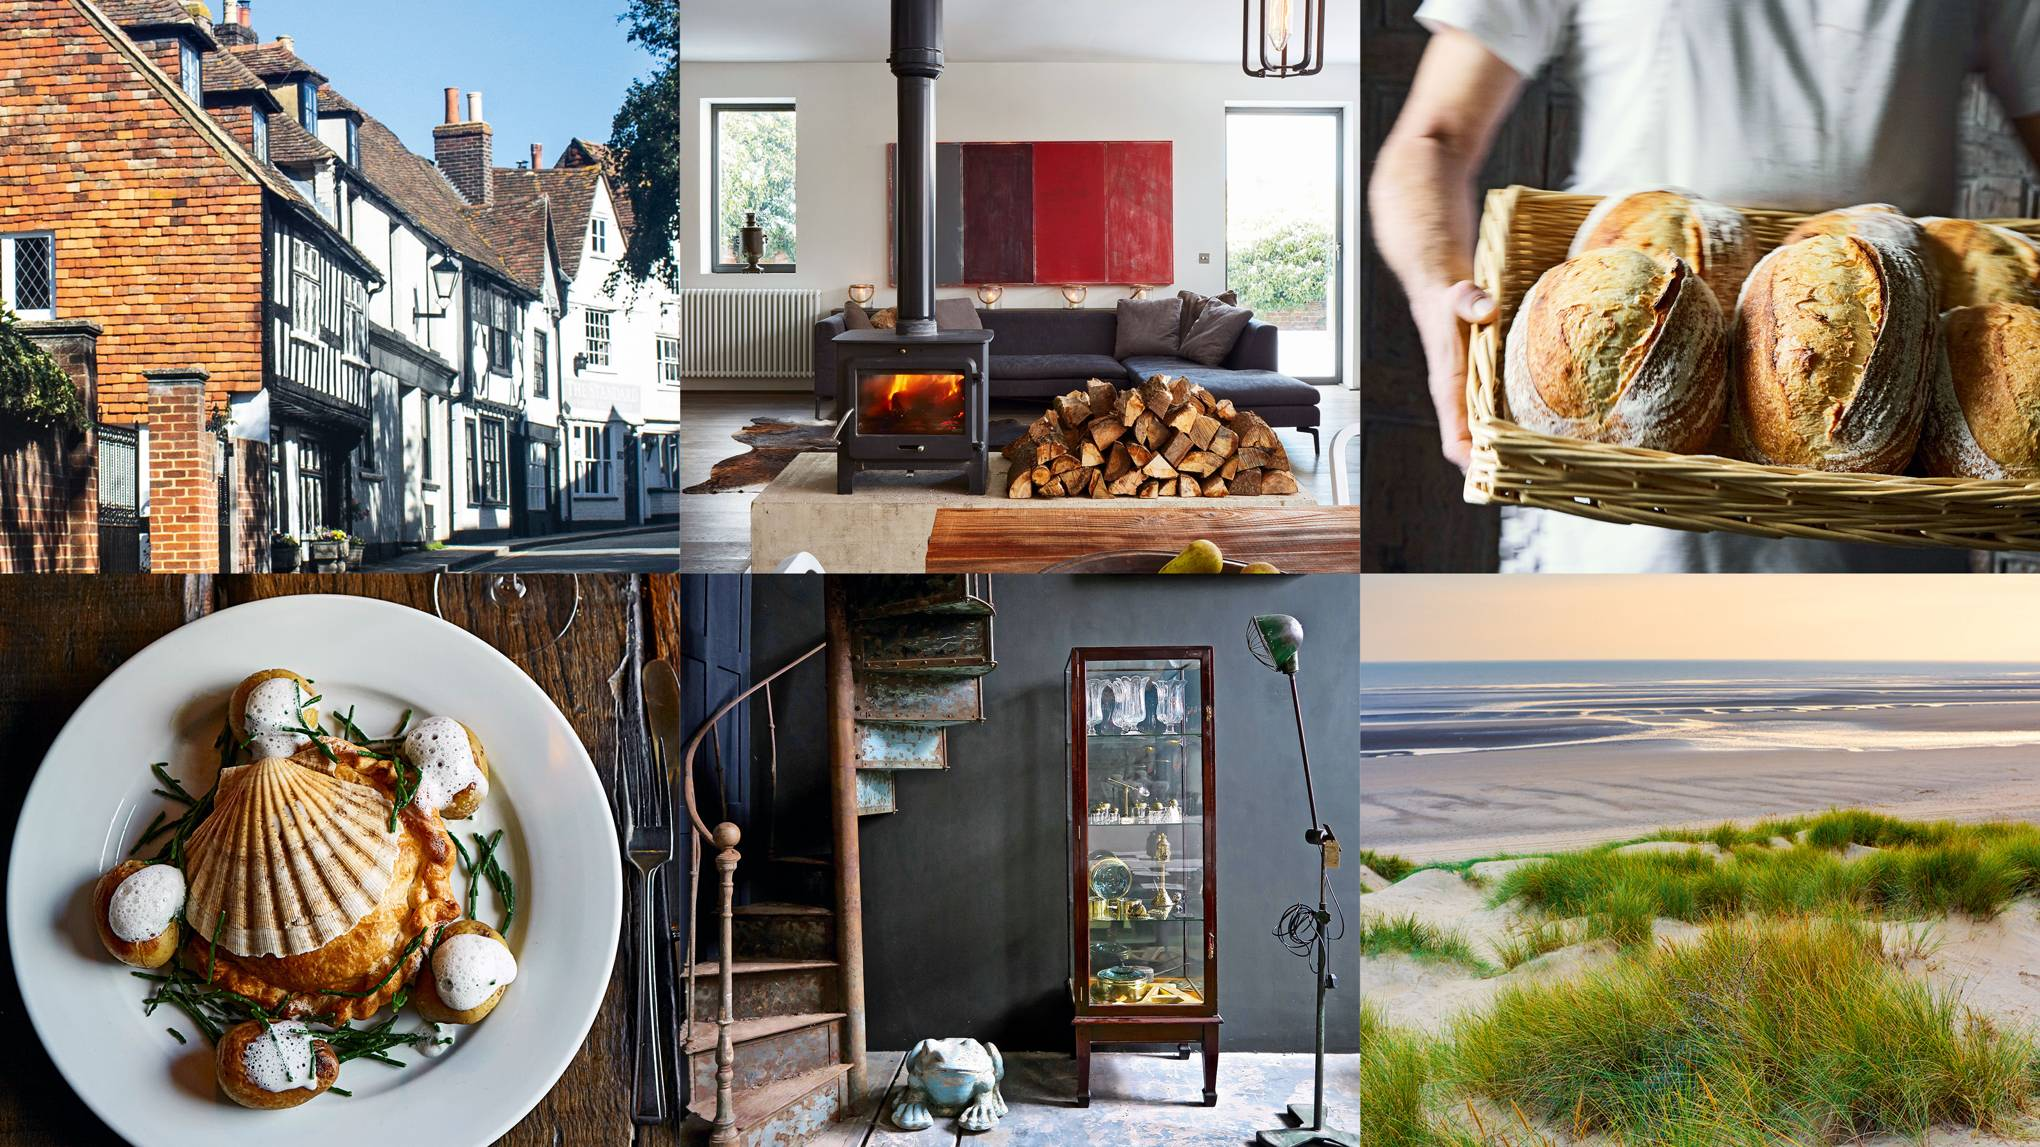 Rye: The medieval seaside town getting a thoroughly modern update